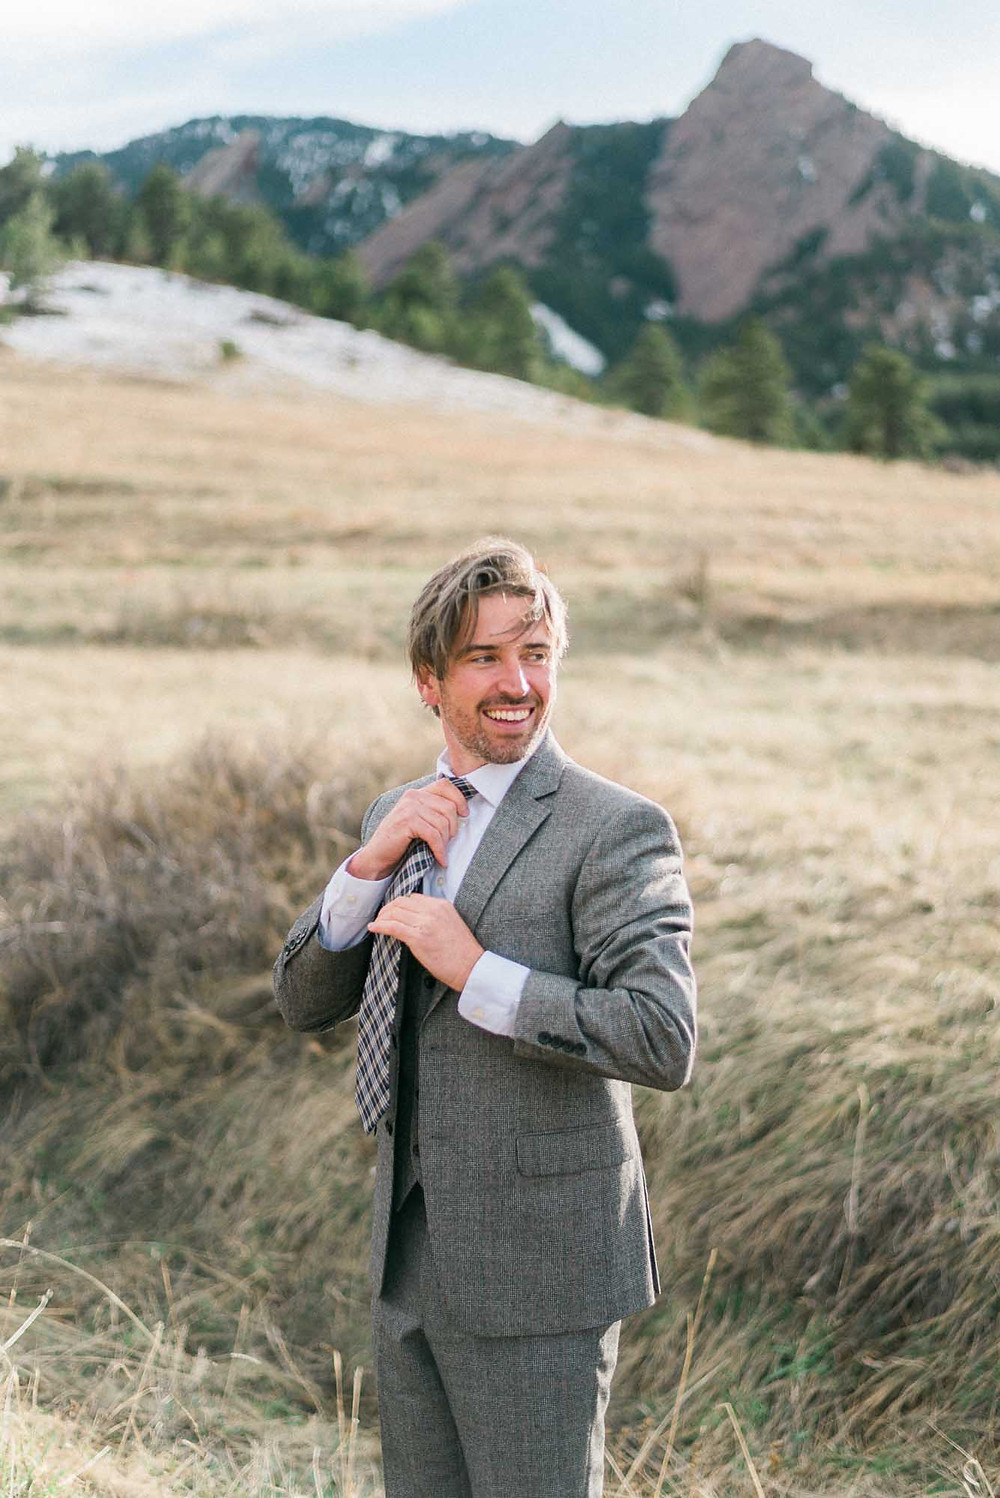 Groom at Chautauqua Park Boulder in March